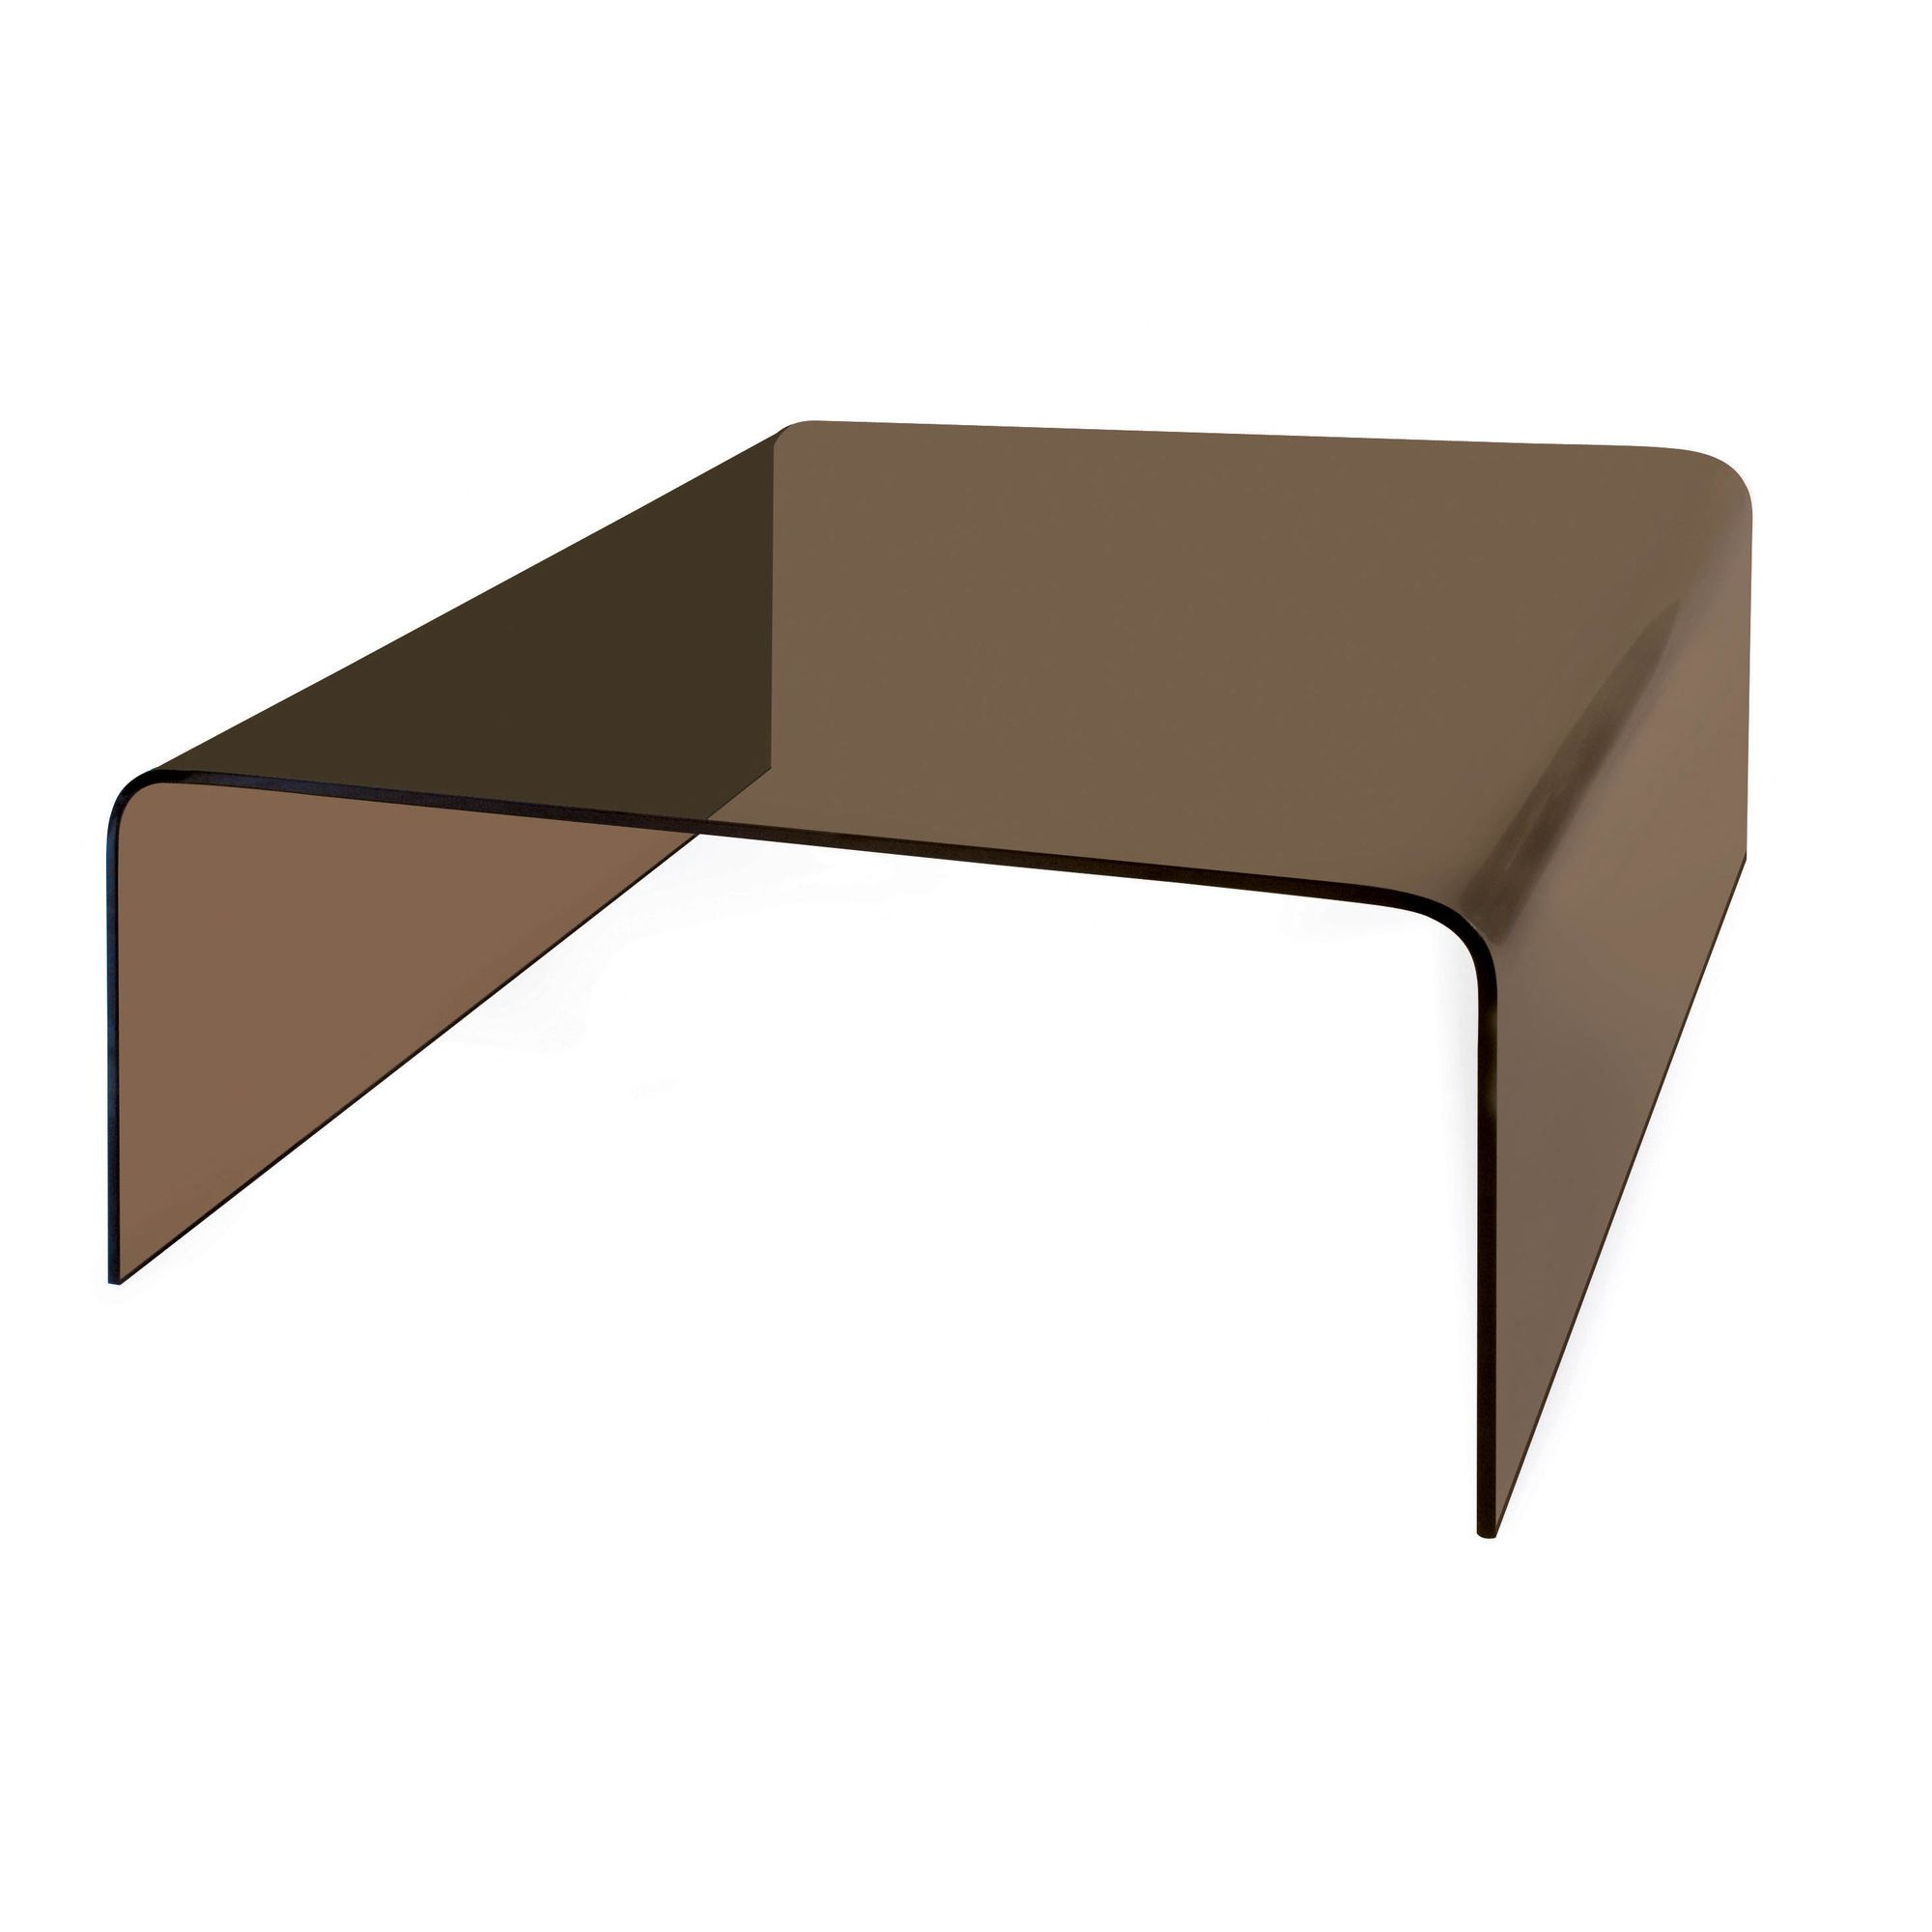 Premier Housewares Cascade Square Coffee Table - Black at Tesco Direct